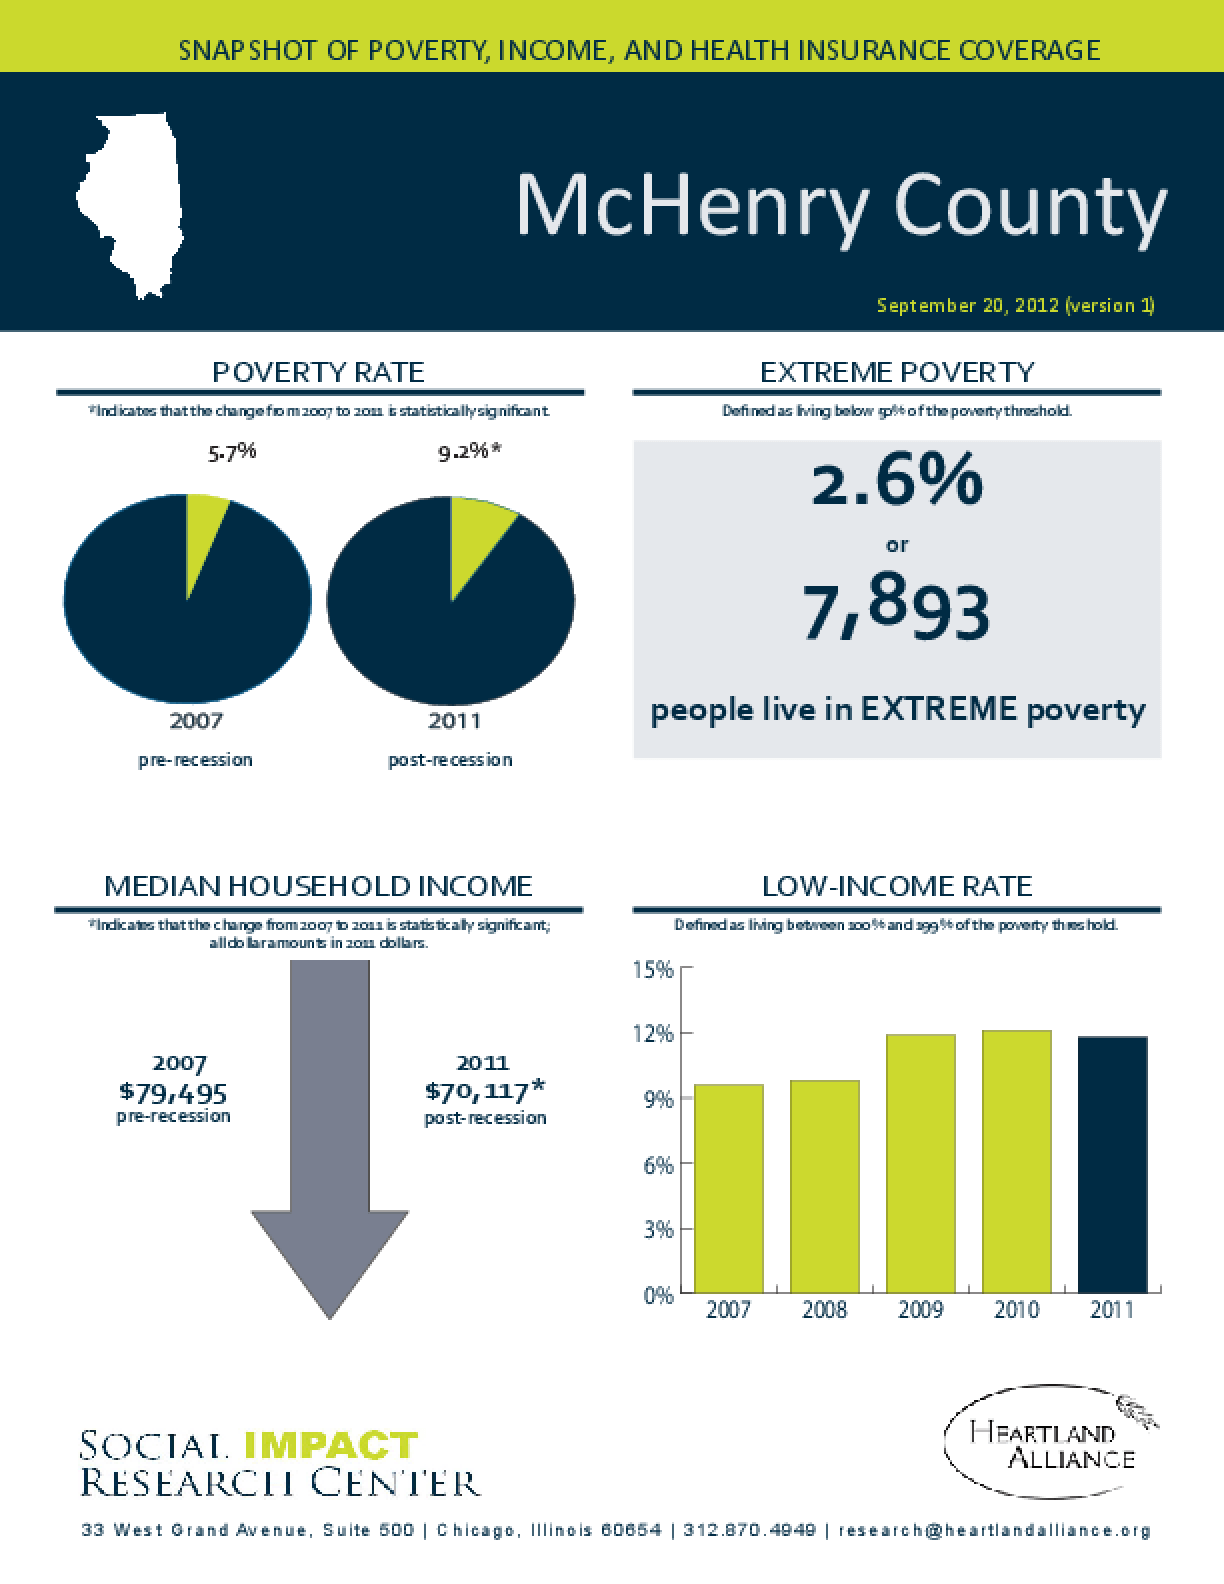 McHenry County: Snapshot of Poverty, Income, and Health Insurance Coverage - 2011